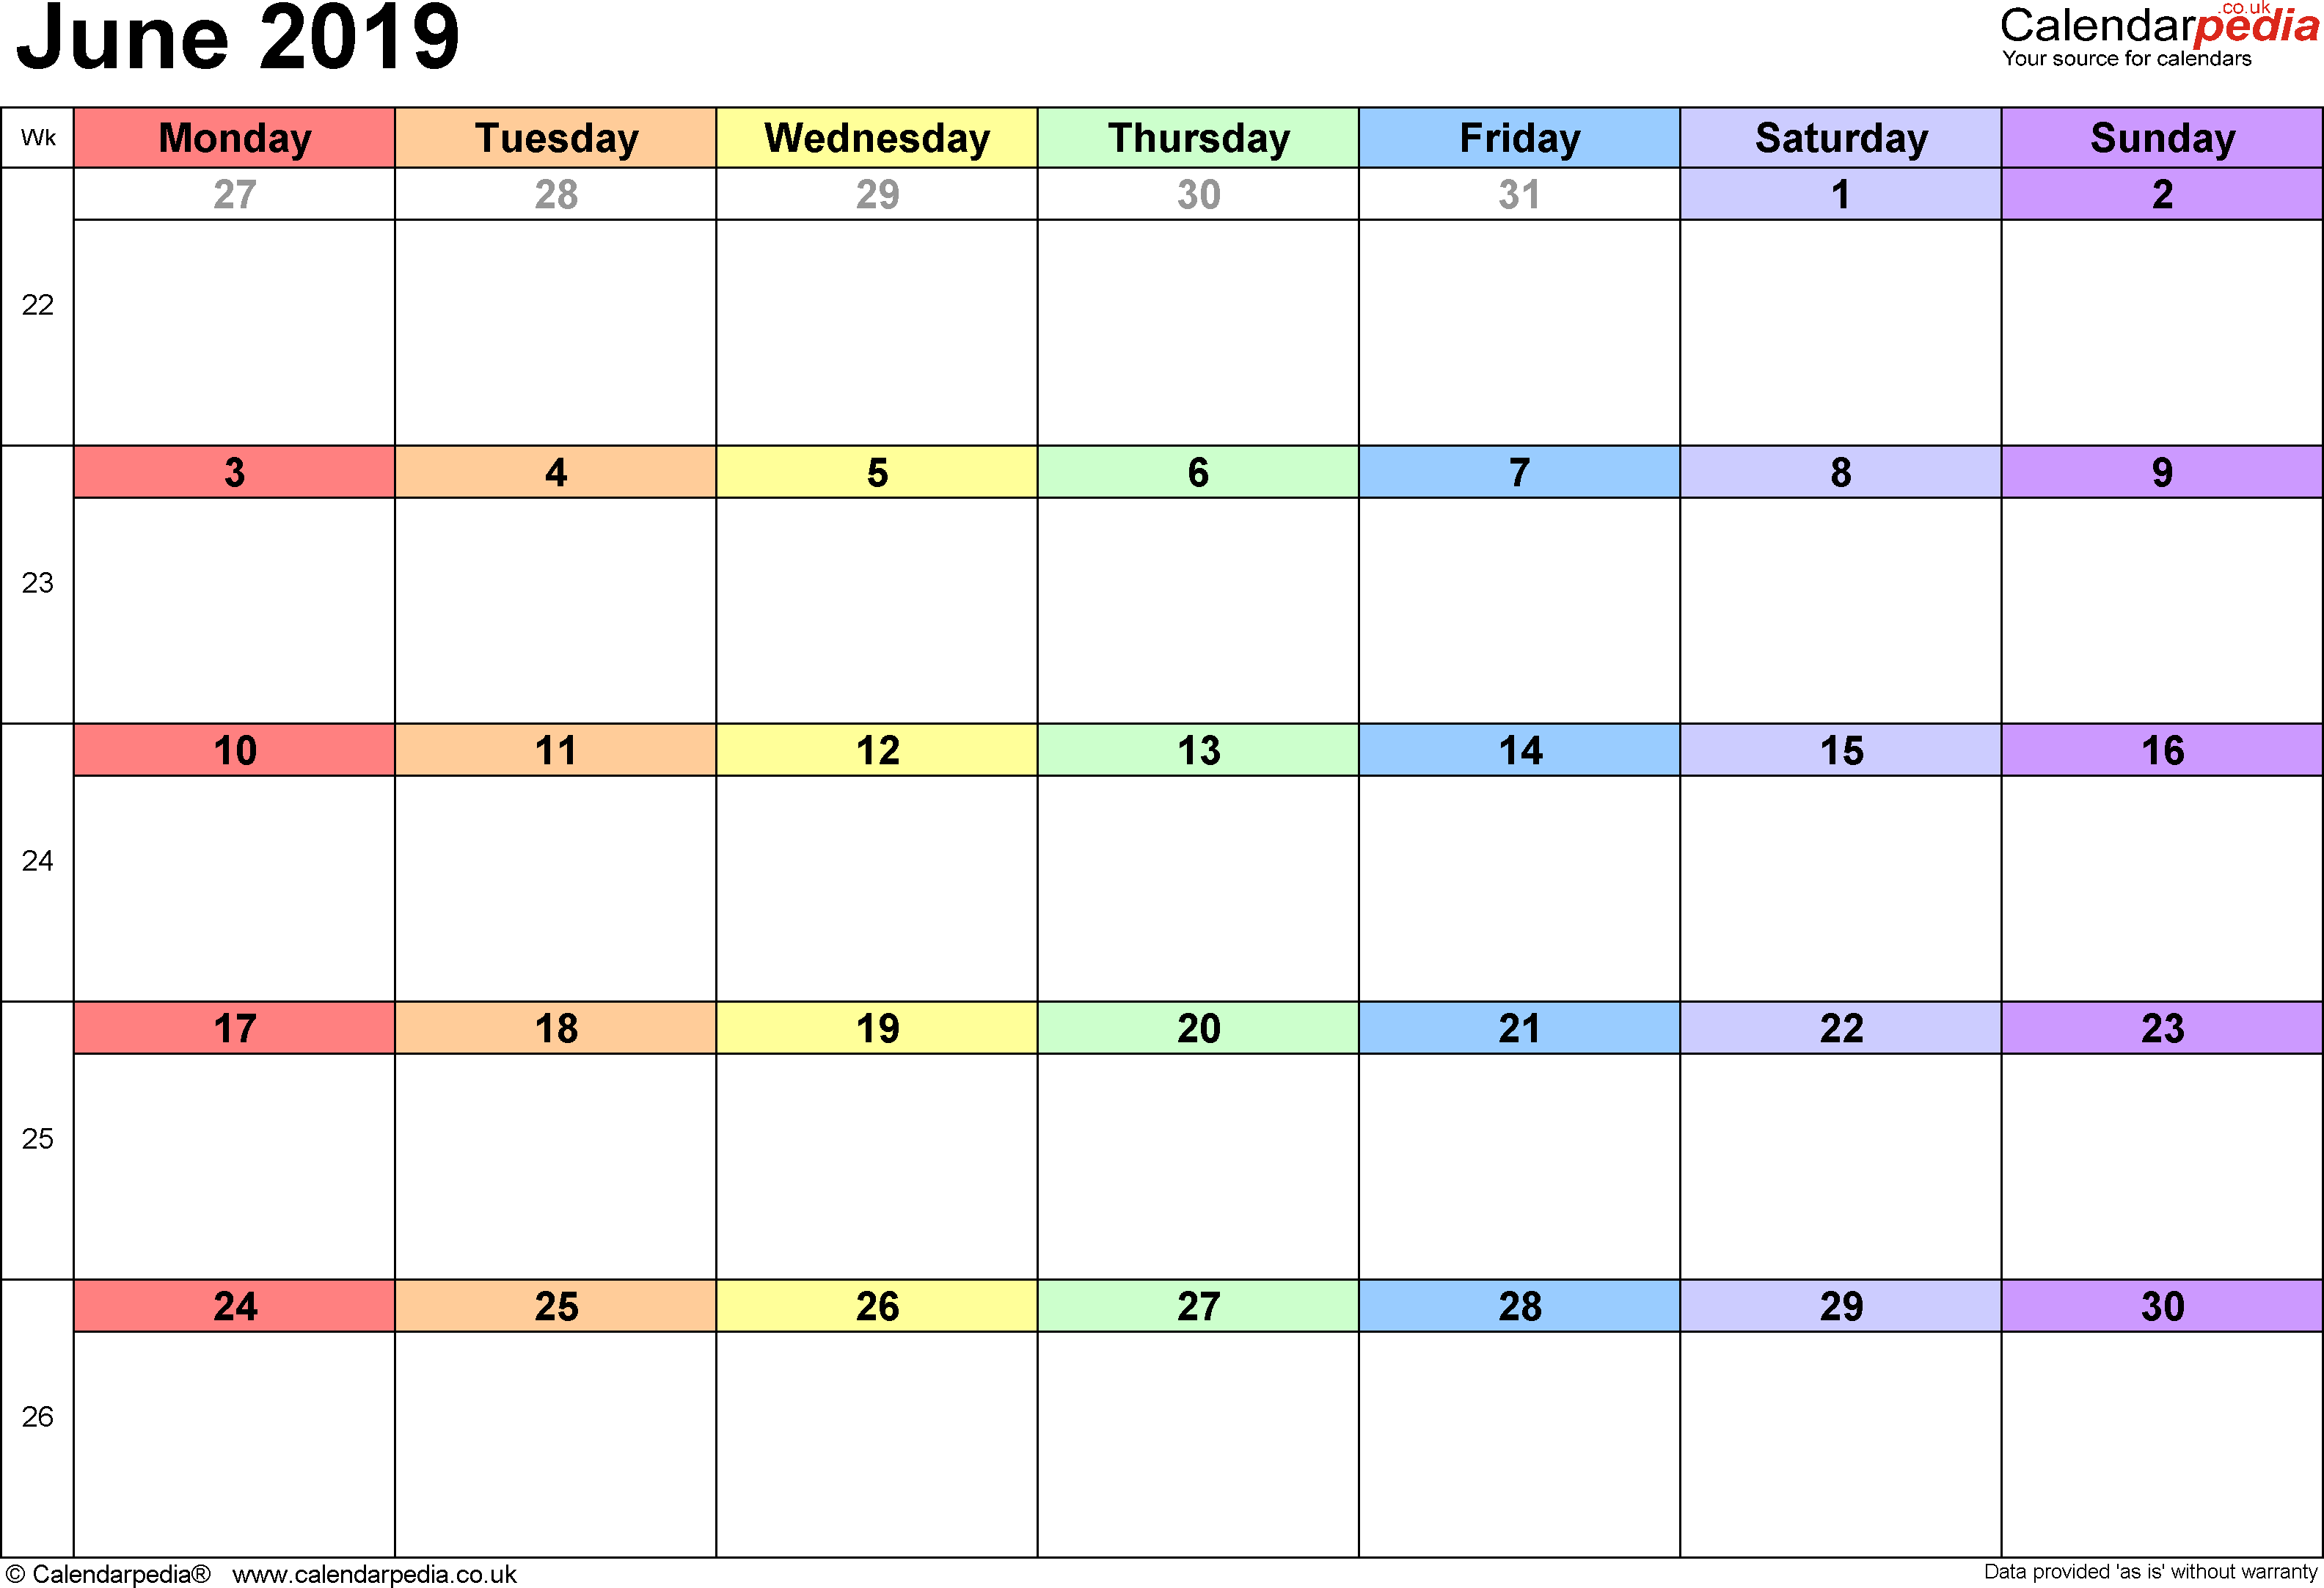 Calendar Sheet January 2019 Calendar June 2019 UK, Bank Holidays, Excel/PDF/Word Templates